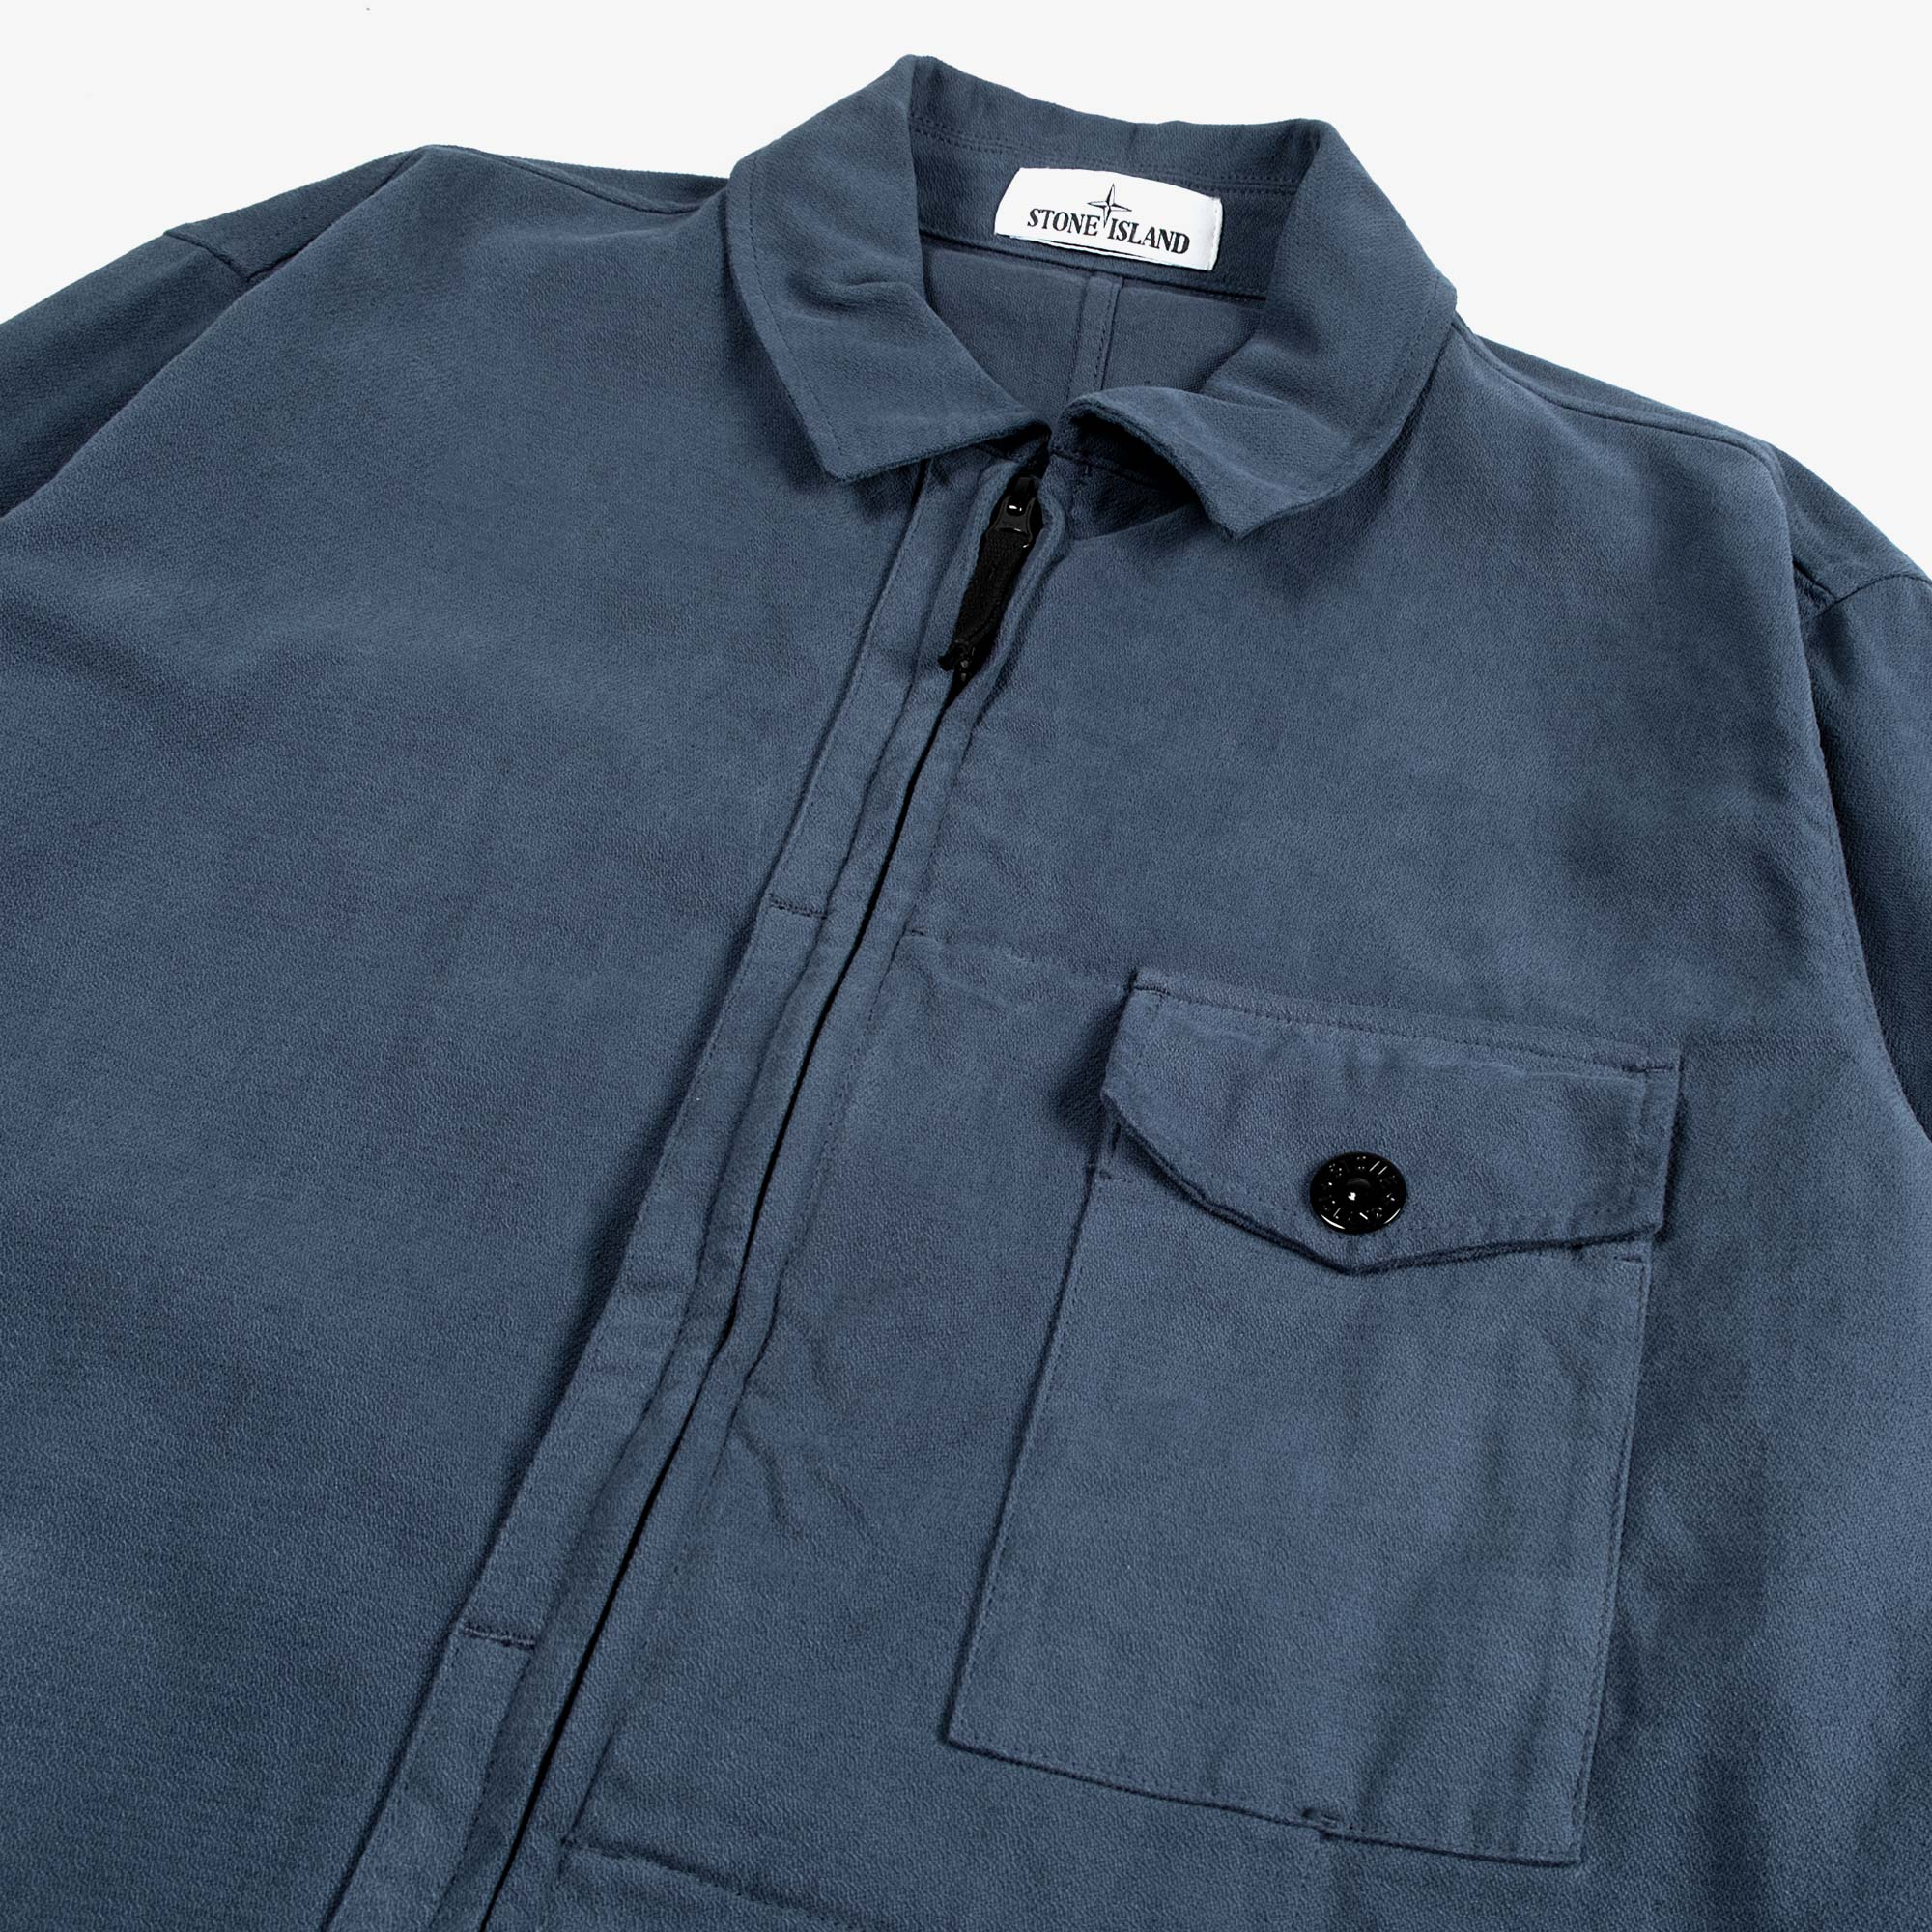 Stone Island Textured Brushed Recycled Cotton Overshirt 10704 - Cobalt Blue 3